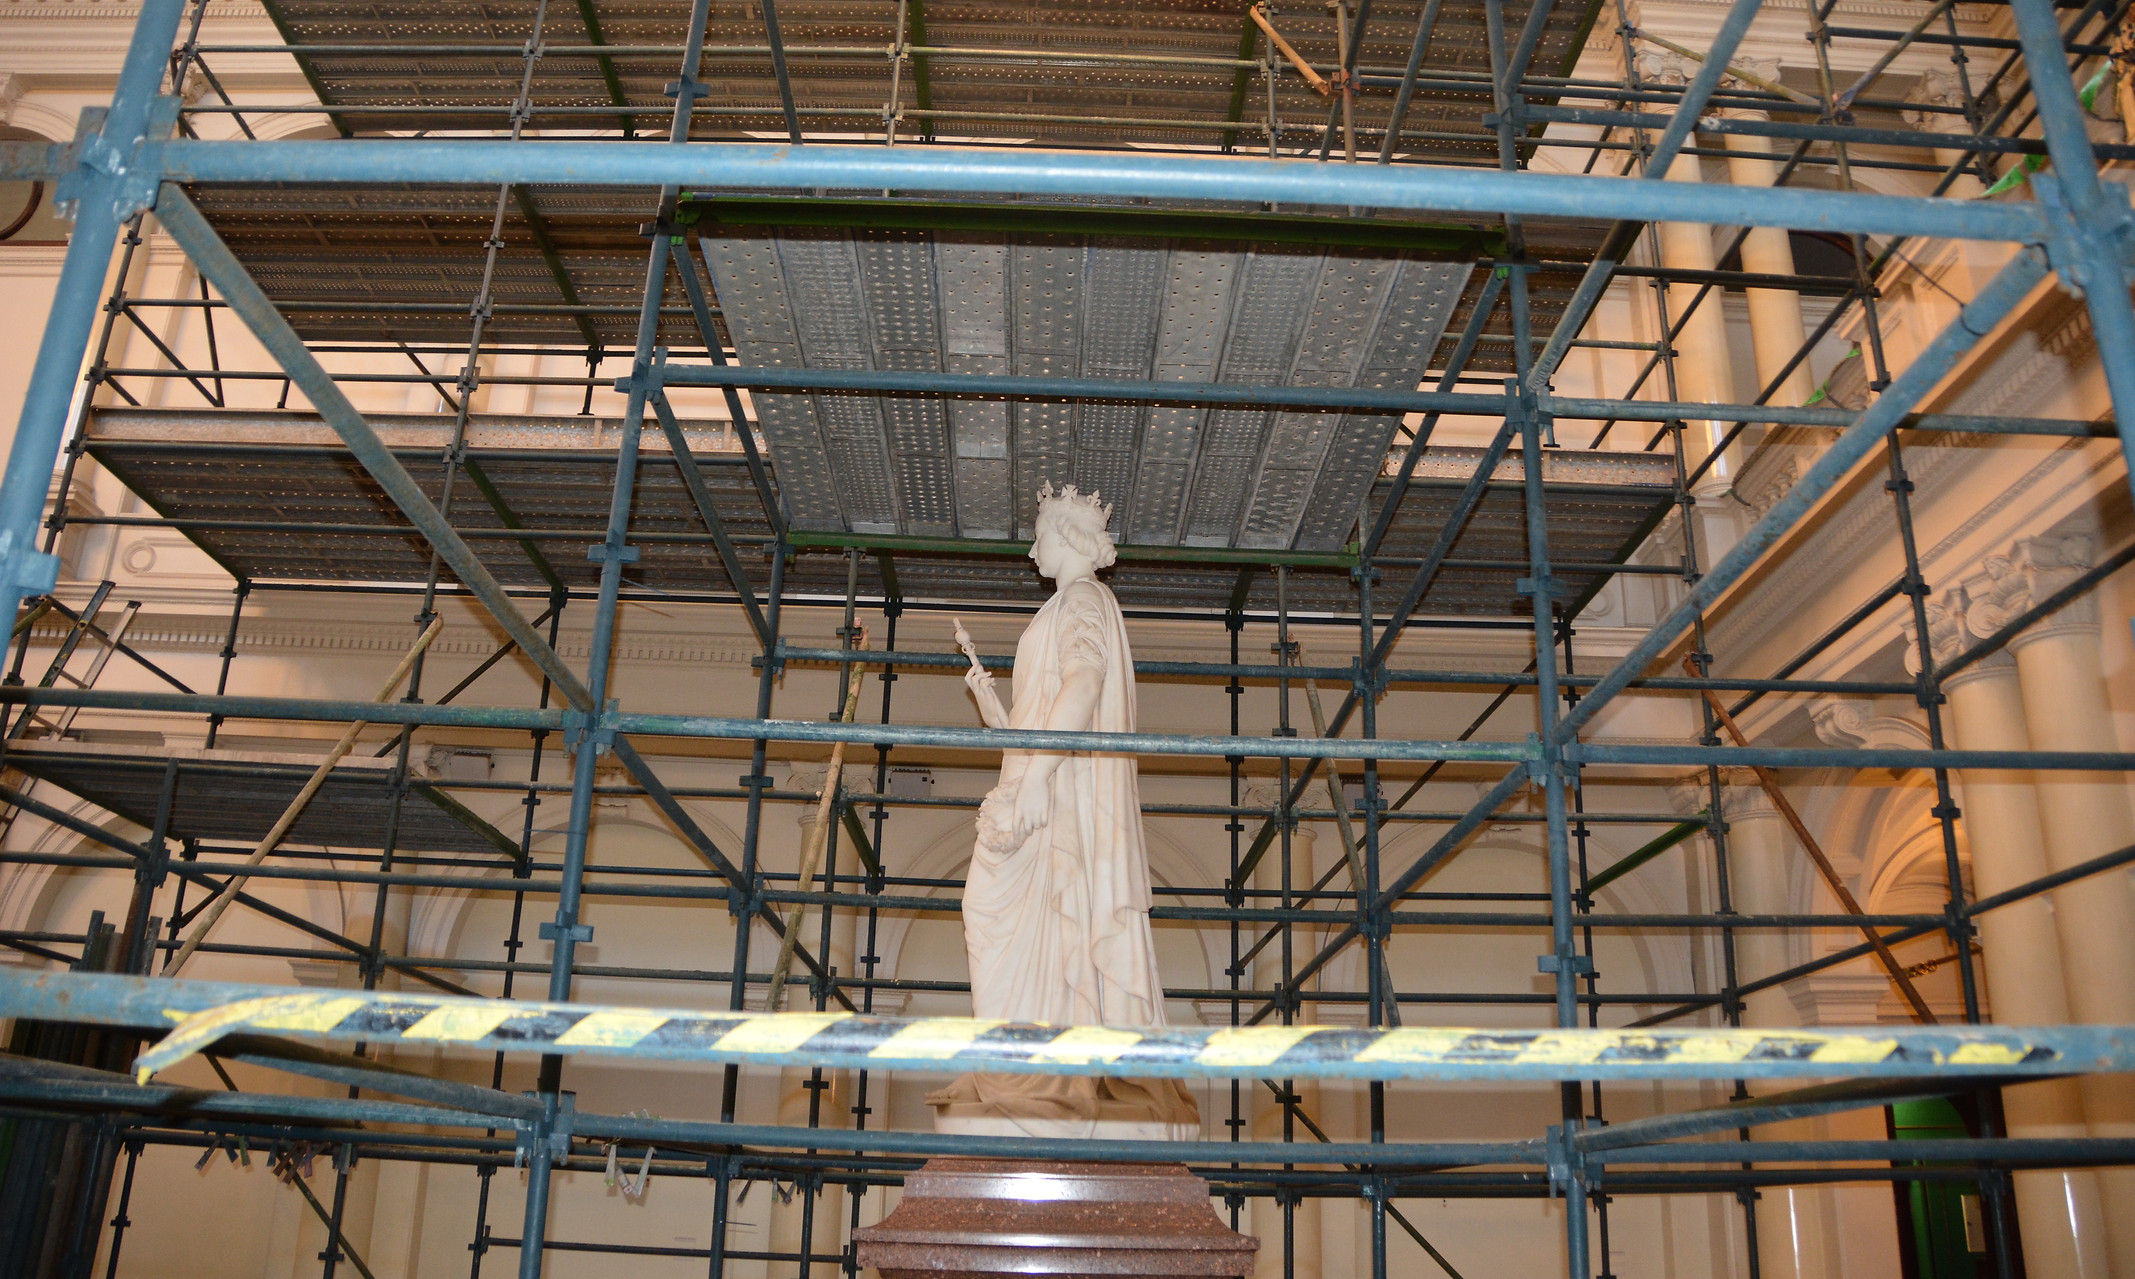 Photo of the Queen Victoria statue surrounded by scaffolding